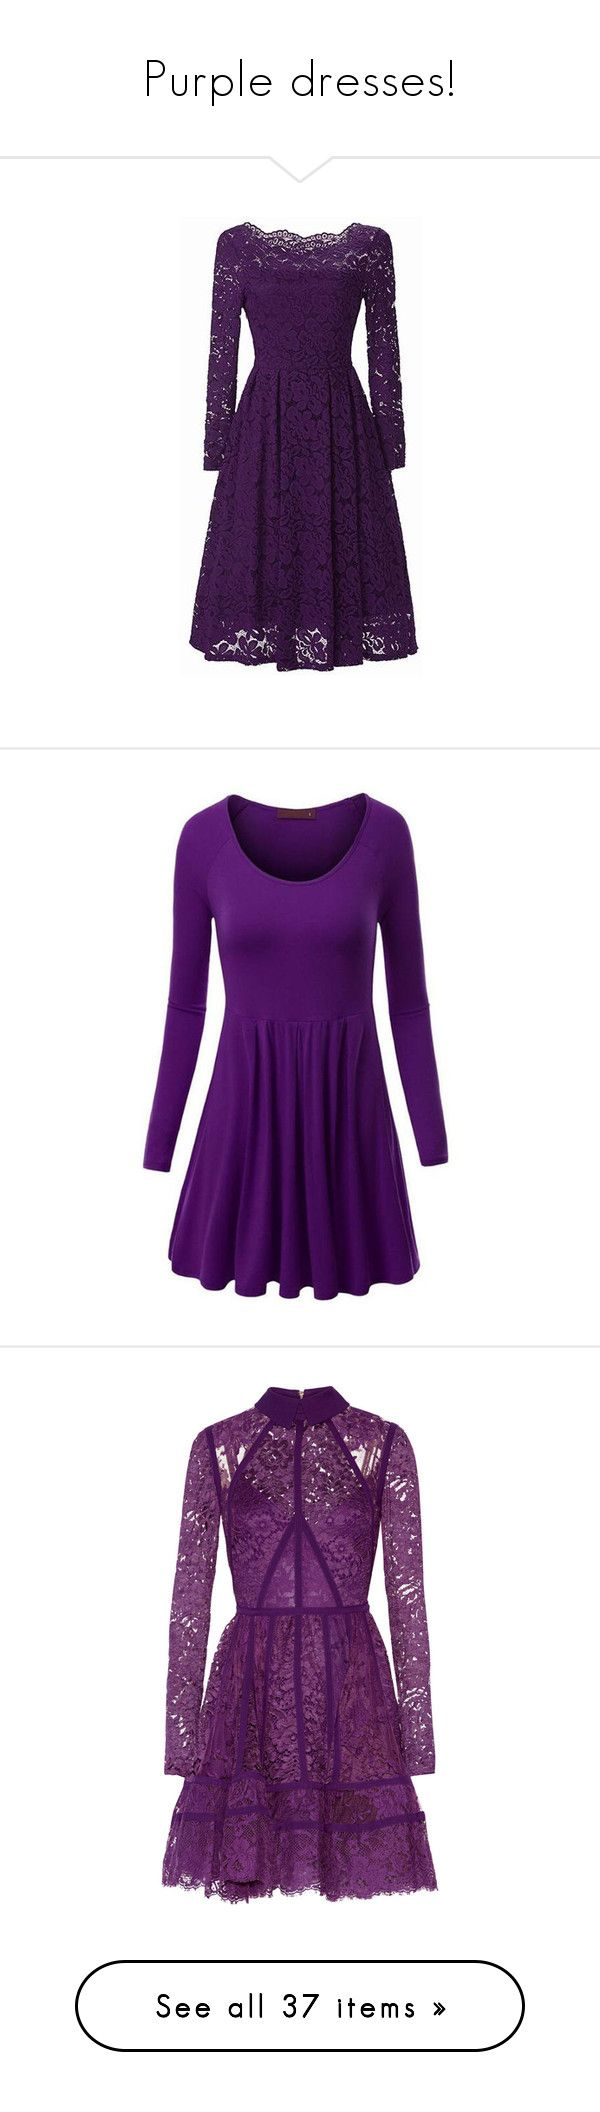 """""""Purple dresses!"""" by miss-image ❤ liked on Polyvore featuring dresses, purple, long sleeve knee length dress, boat neck dress, long sleeve print dress, lace sleeve dress, scalloped lace dress, pattern dress, long purple dress and long dresses"""